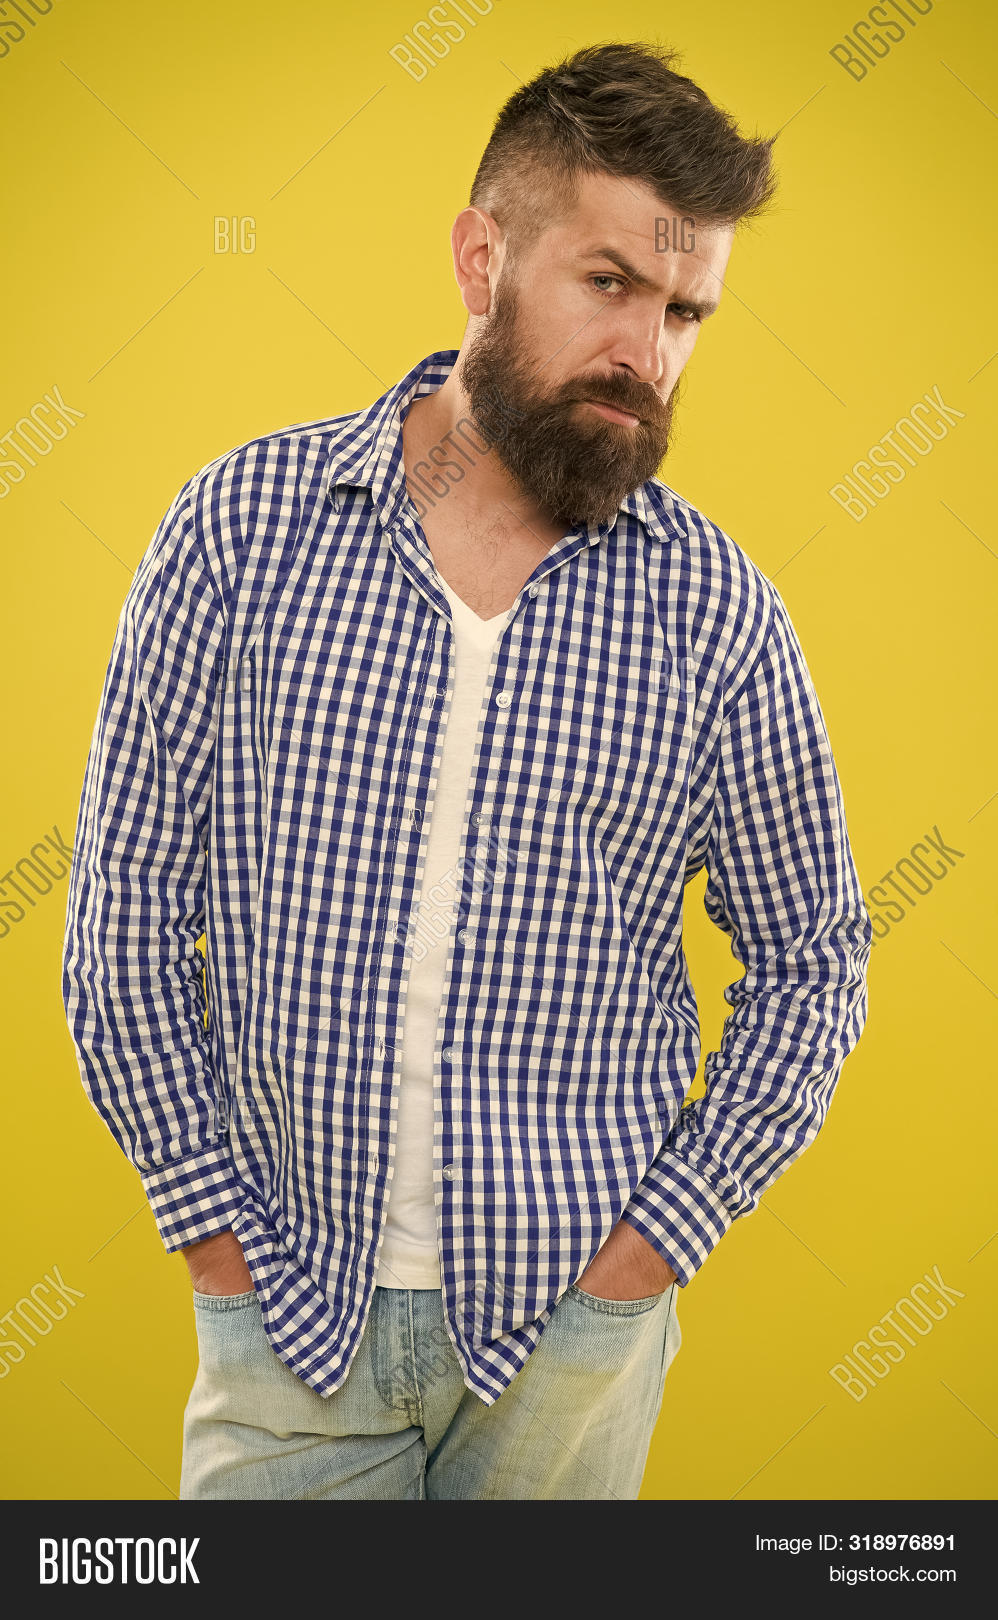 adult,appearance,background,barber,beard,bearded,brutal,care,casual,caucasian,concept,doubts,emotional,expression,face,fashion,fashionable,guy,haircut,hairdresser,handsome,having,hesitate,hipster,lumbersexual,macho,maintain,man,masculine,masculinity,mustache,serious,some,stand,stylish,think,thoughtful,tips,unshaven,yellow